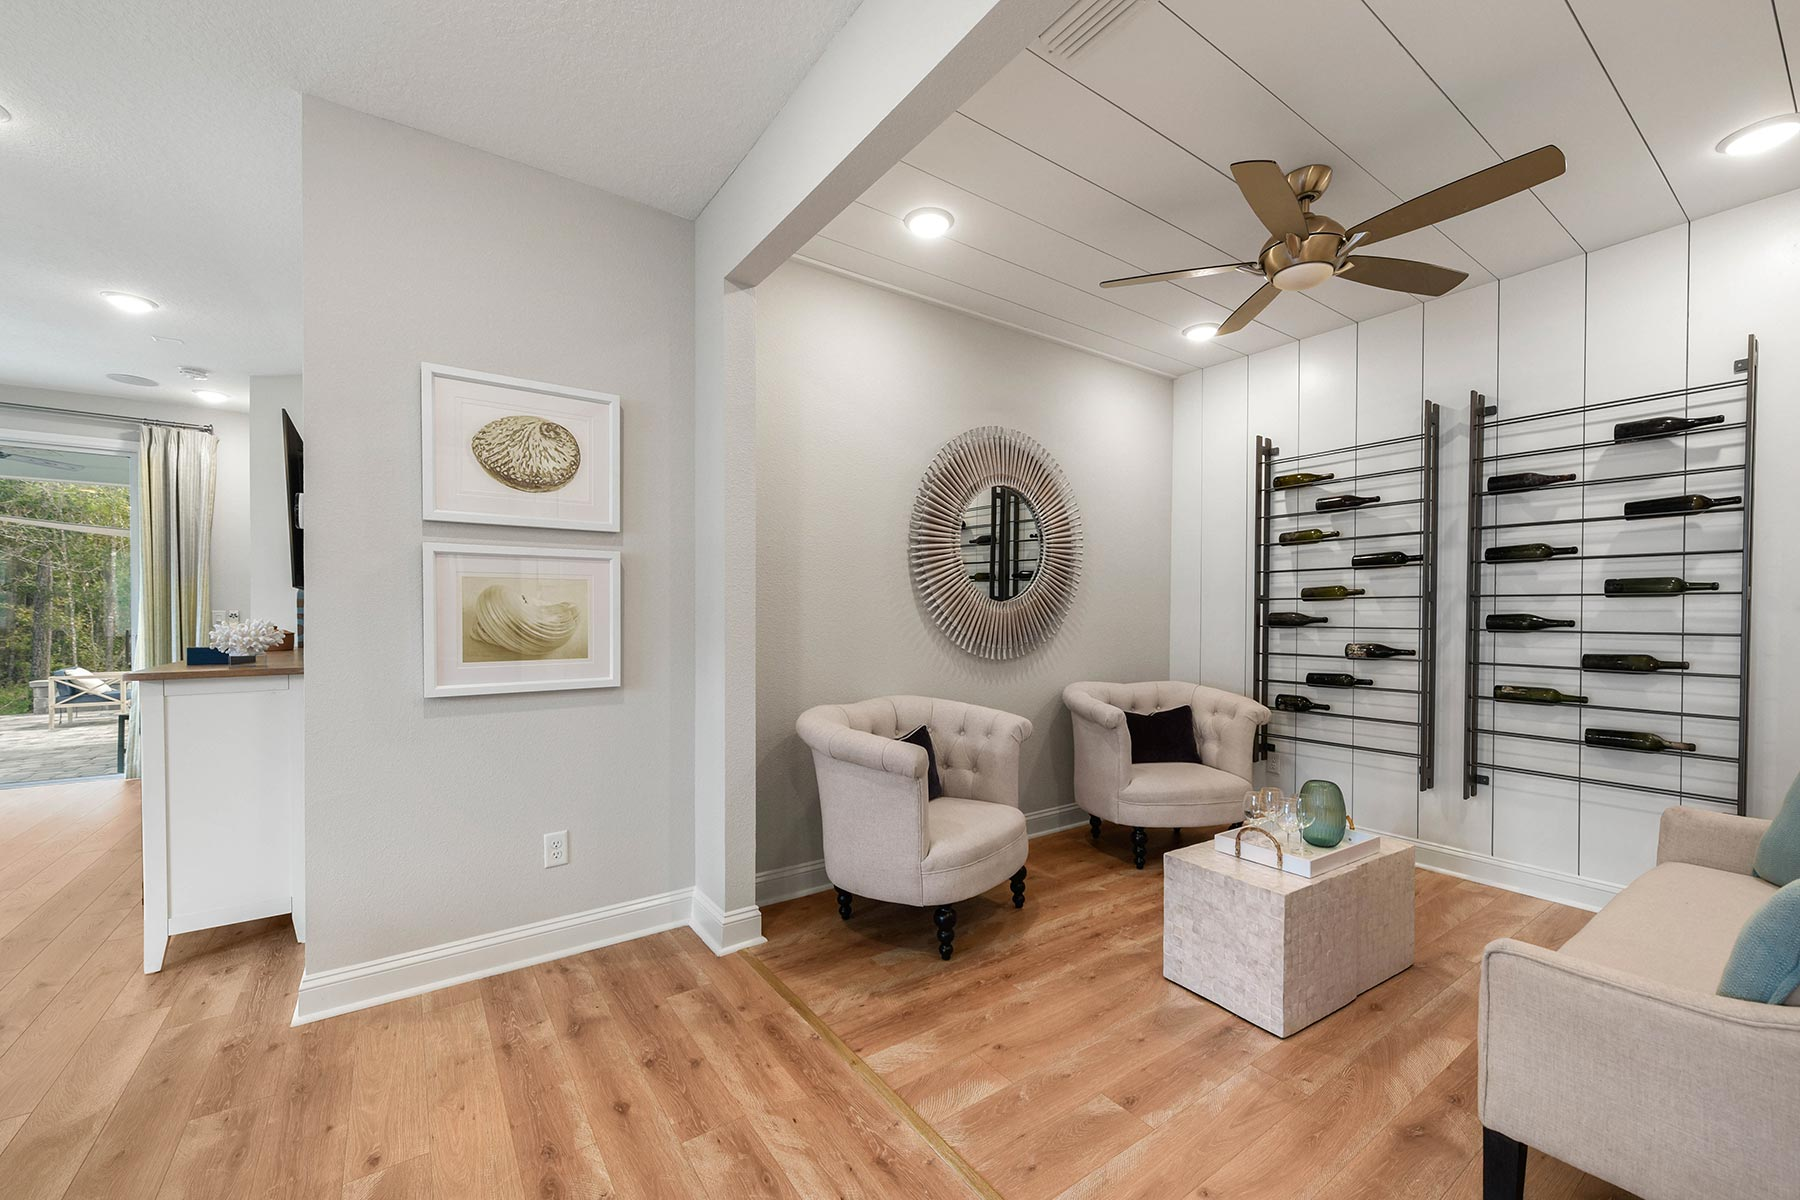 Ocean Plan Others at RiverTown - WaterSong in St. Johns Florida by Mattamy Homes